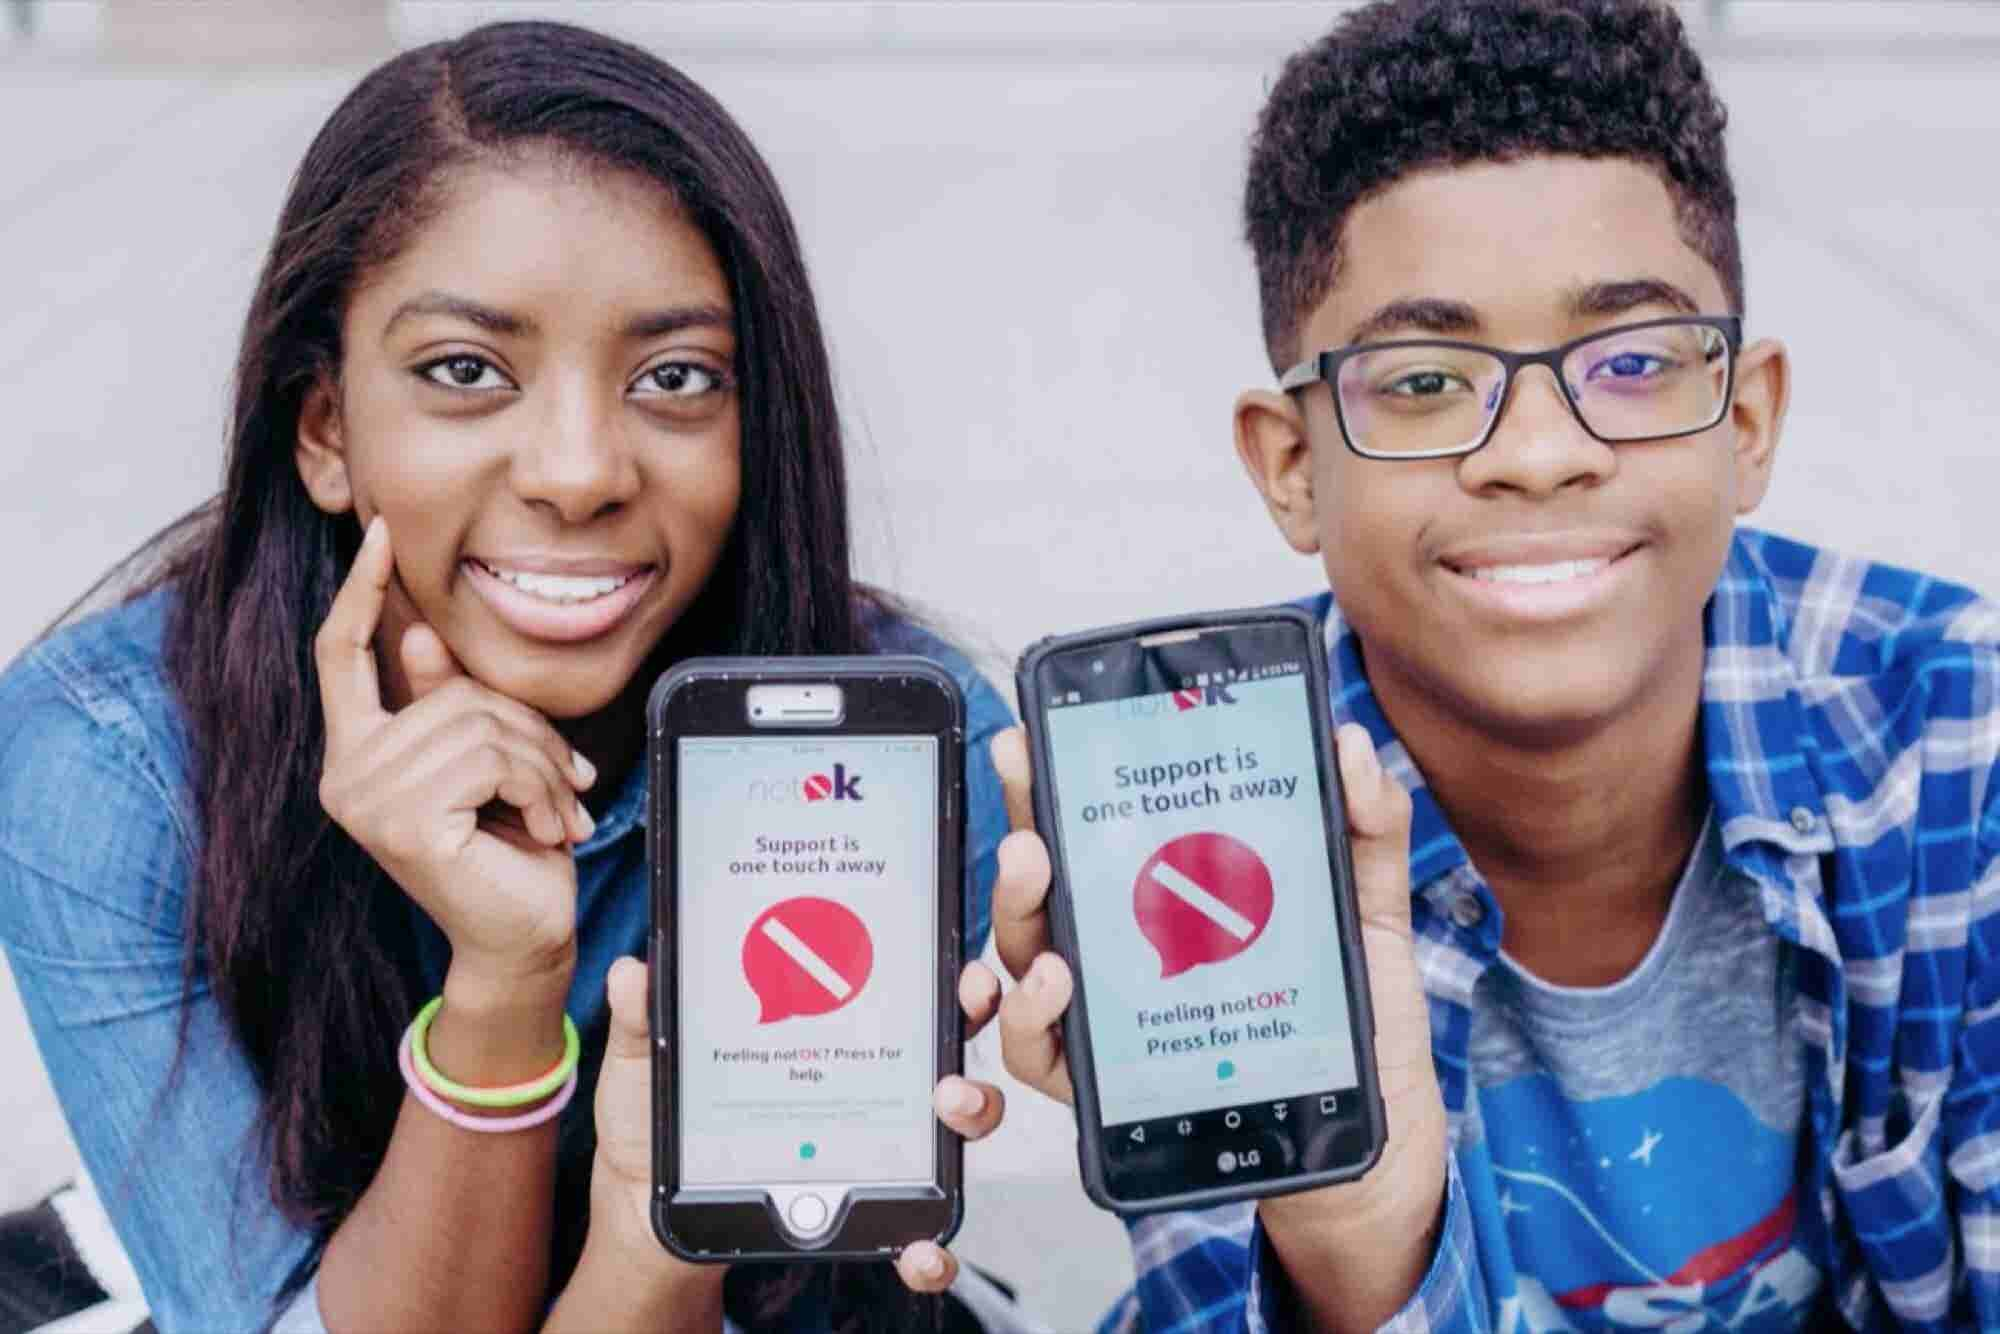 How Two Teenpreneurs Are Helping People When They Are 'Not Okay'